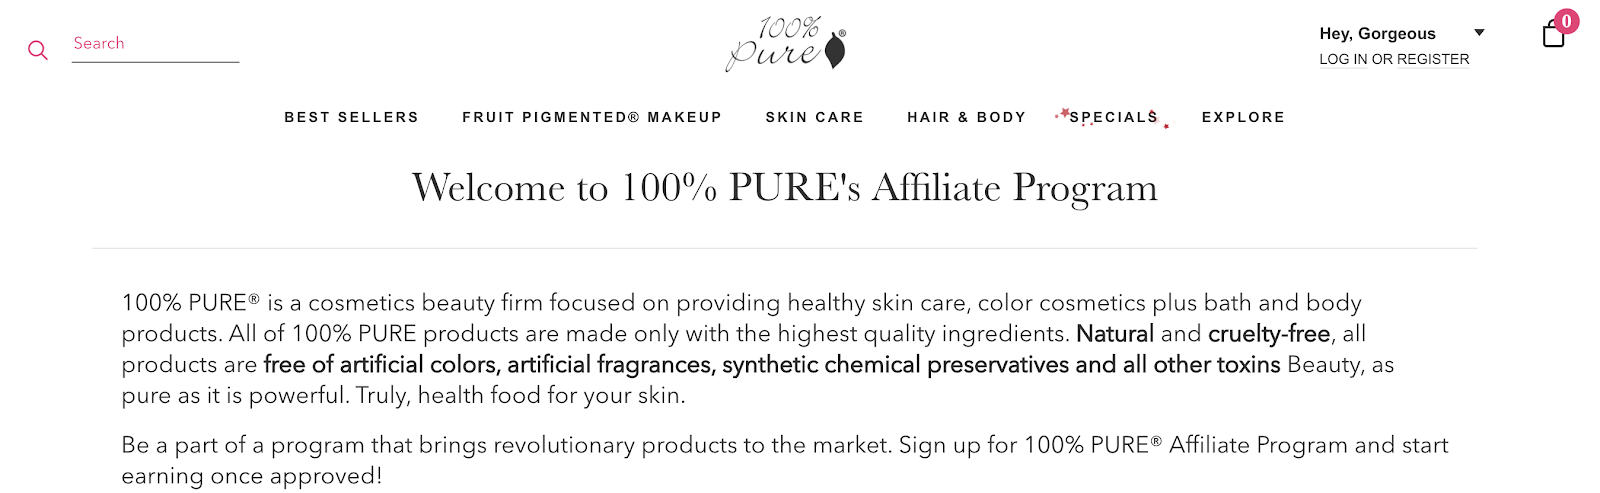 100% Pure Beauty and Makeup Affiliate Program for Bloggers